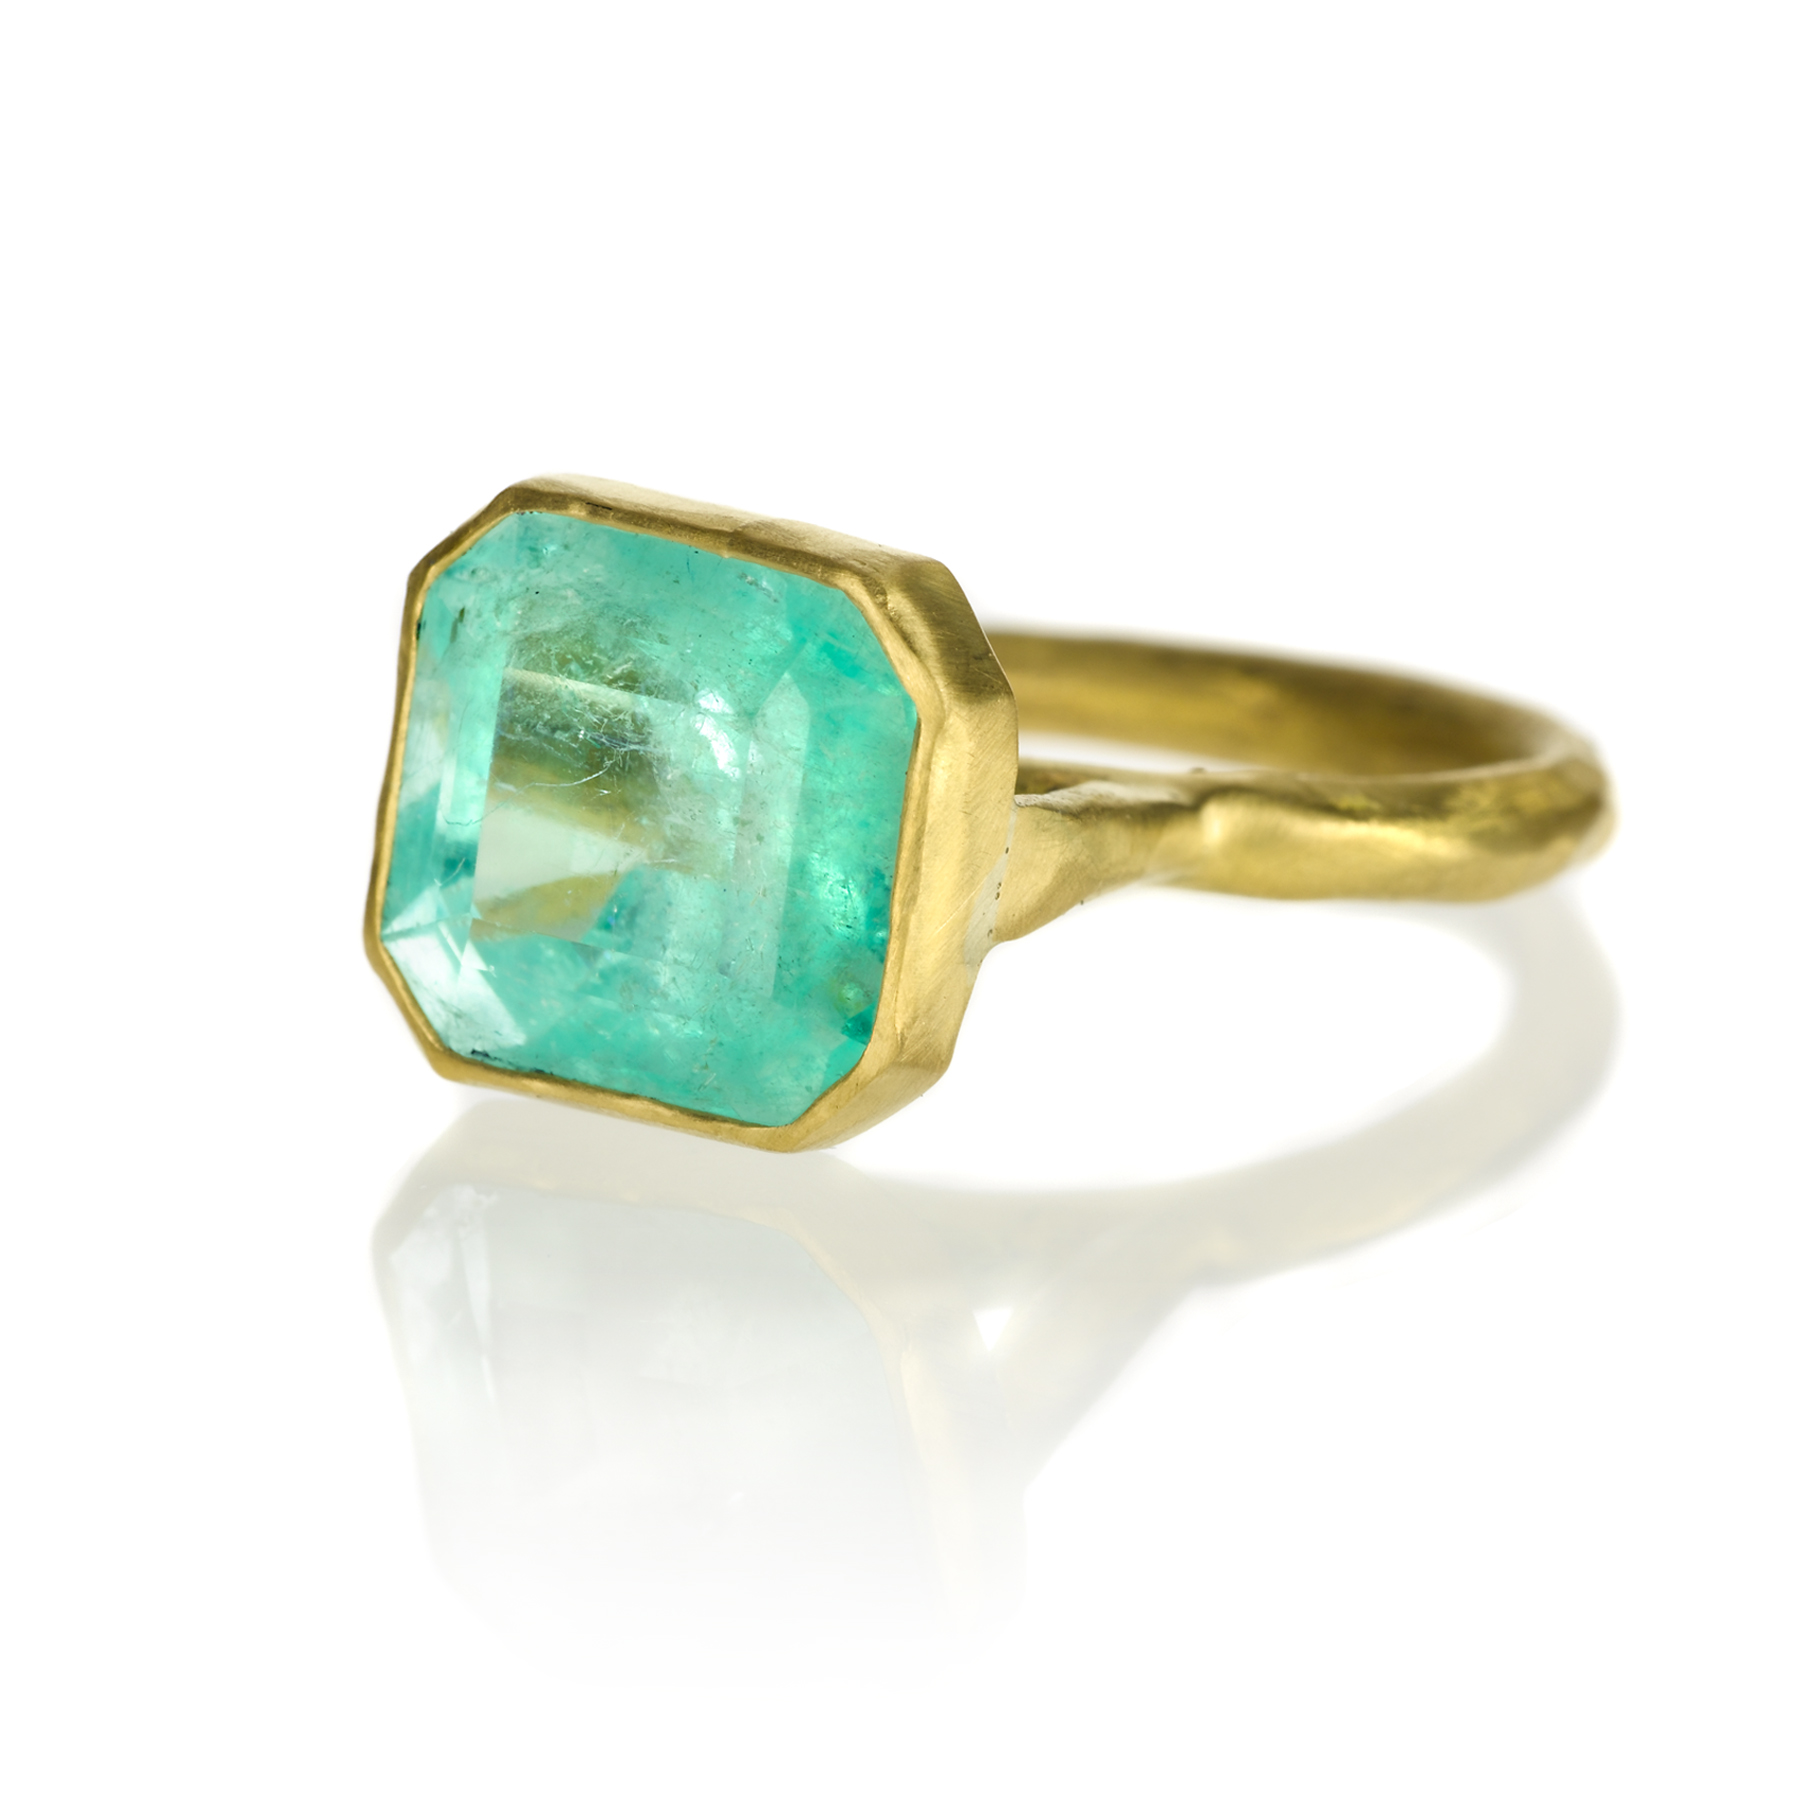 Give us this ring in 22k gold with an 8.25 ct. emerald,$6,700. Just give it to us.